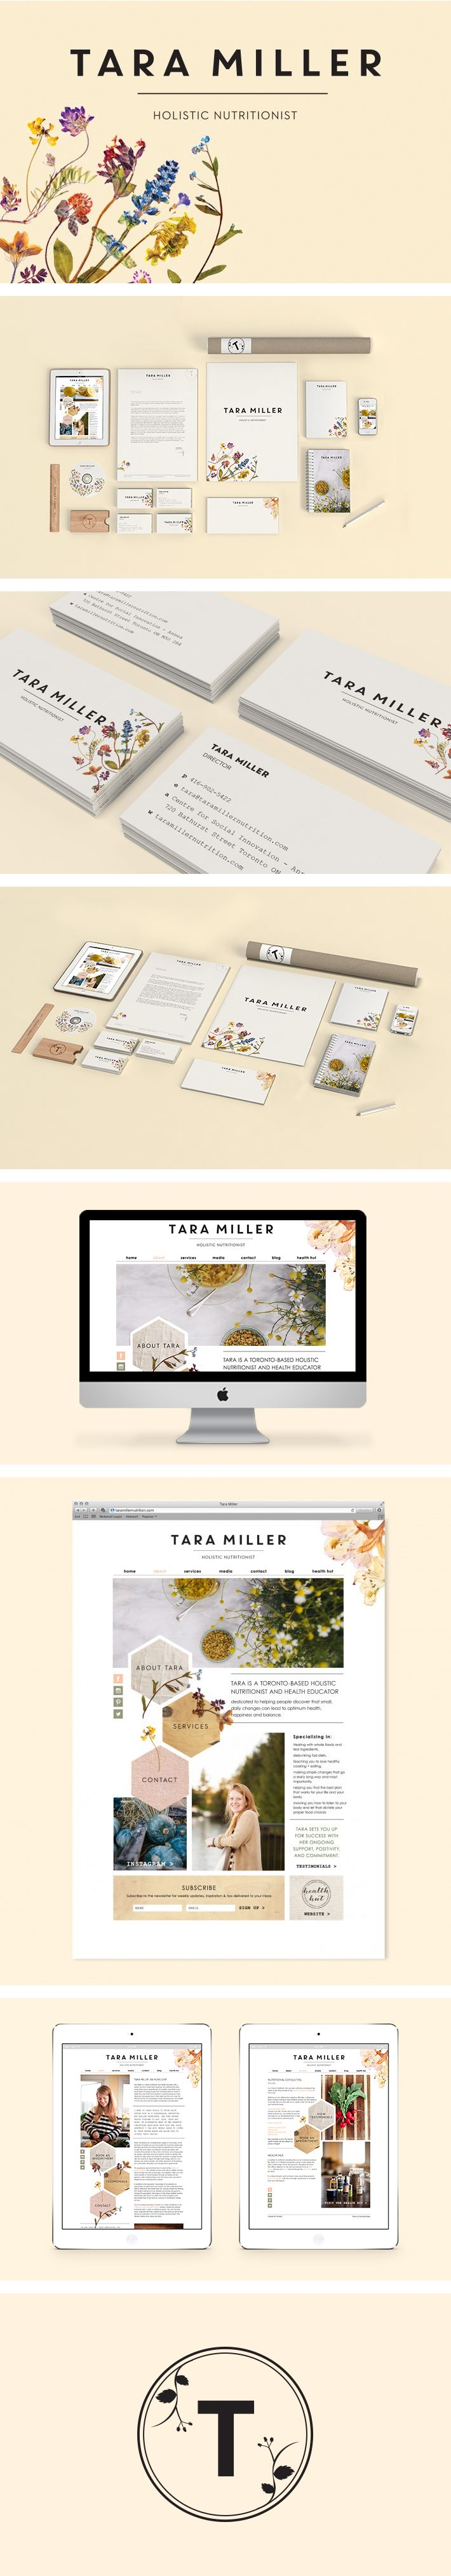 Tara Miller branding by Smack Bang Designs #Branding #BusinessCards #Stationary #Website #GraphicDesign #SmackBangDesigns